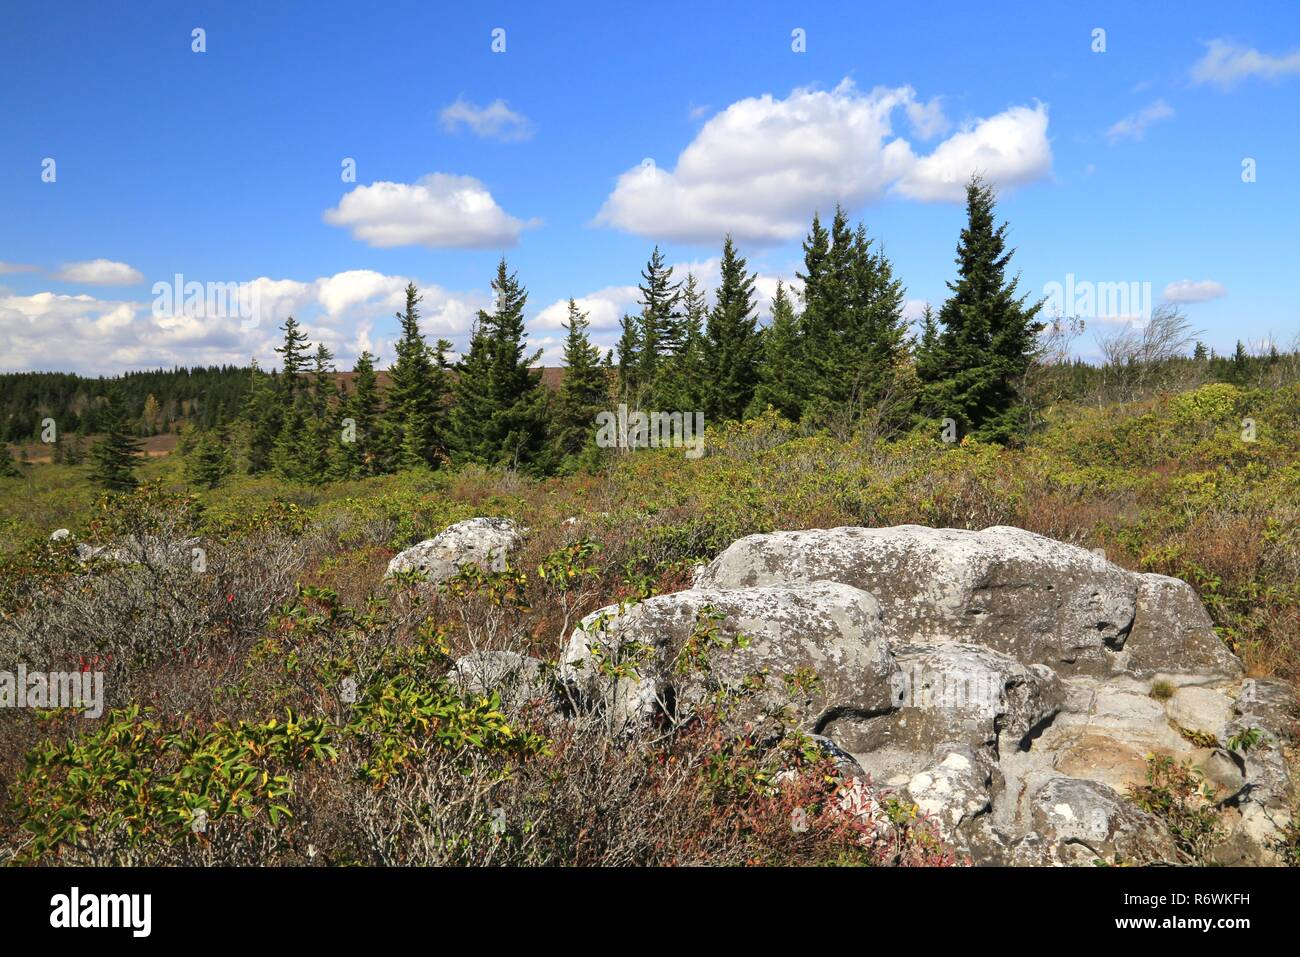 Dolly Sods National Wilderness Area - Stock Image